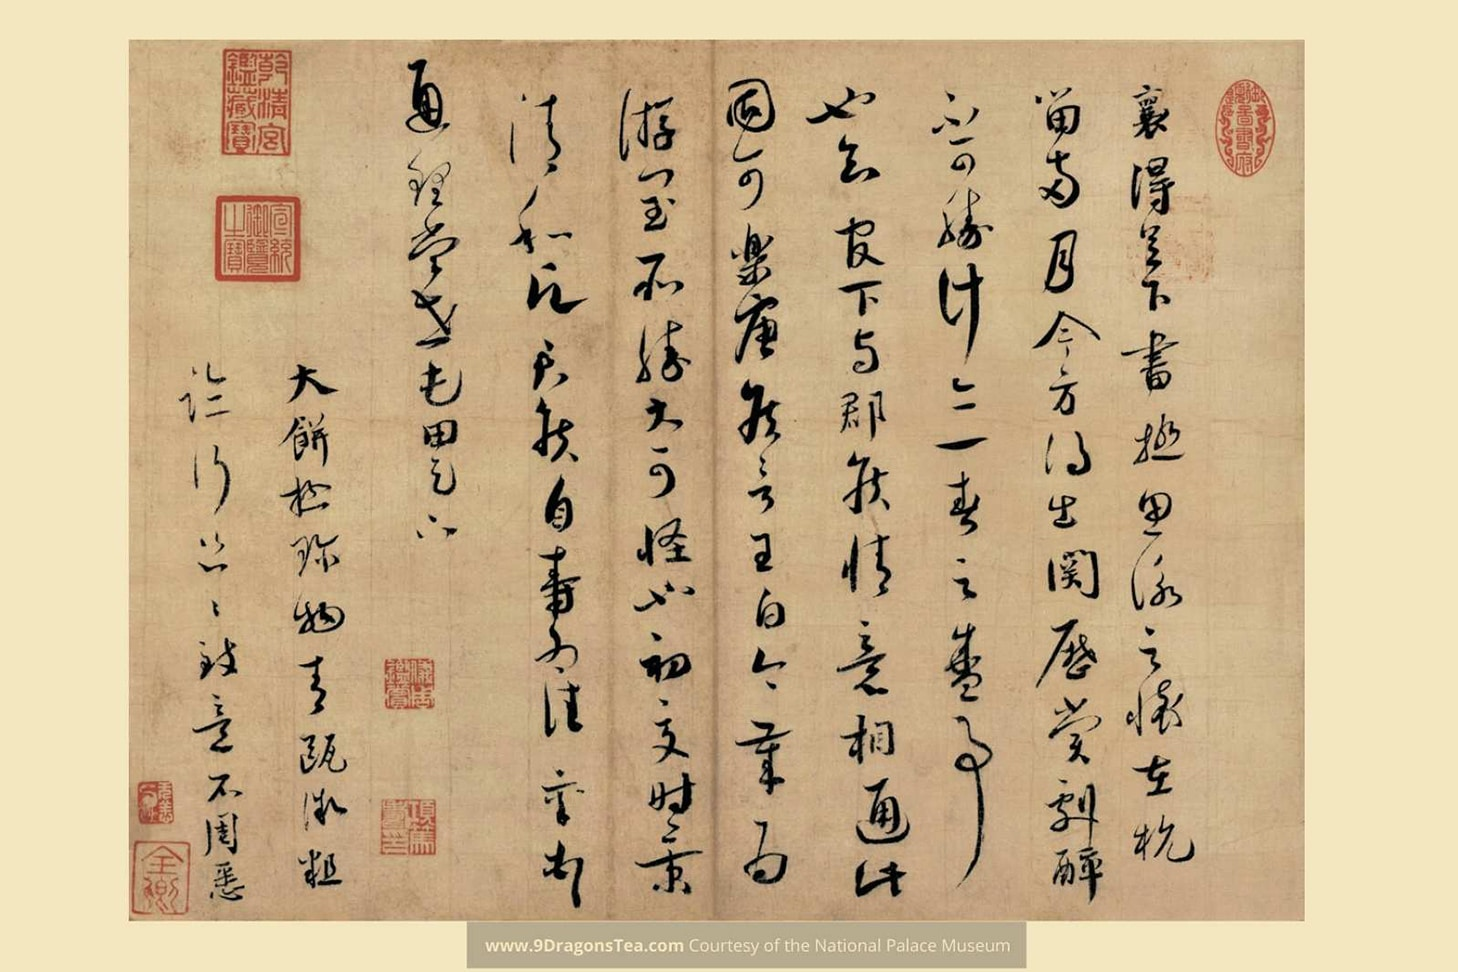 Chinese tea history historical image tea culture letter of tea by Cai-Xiang Siyong